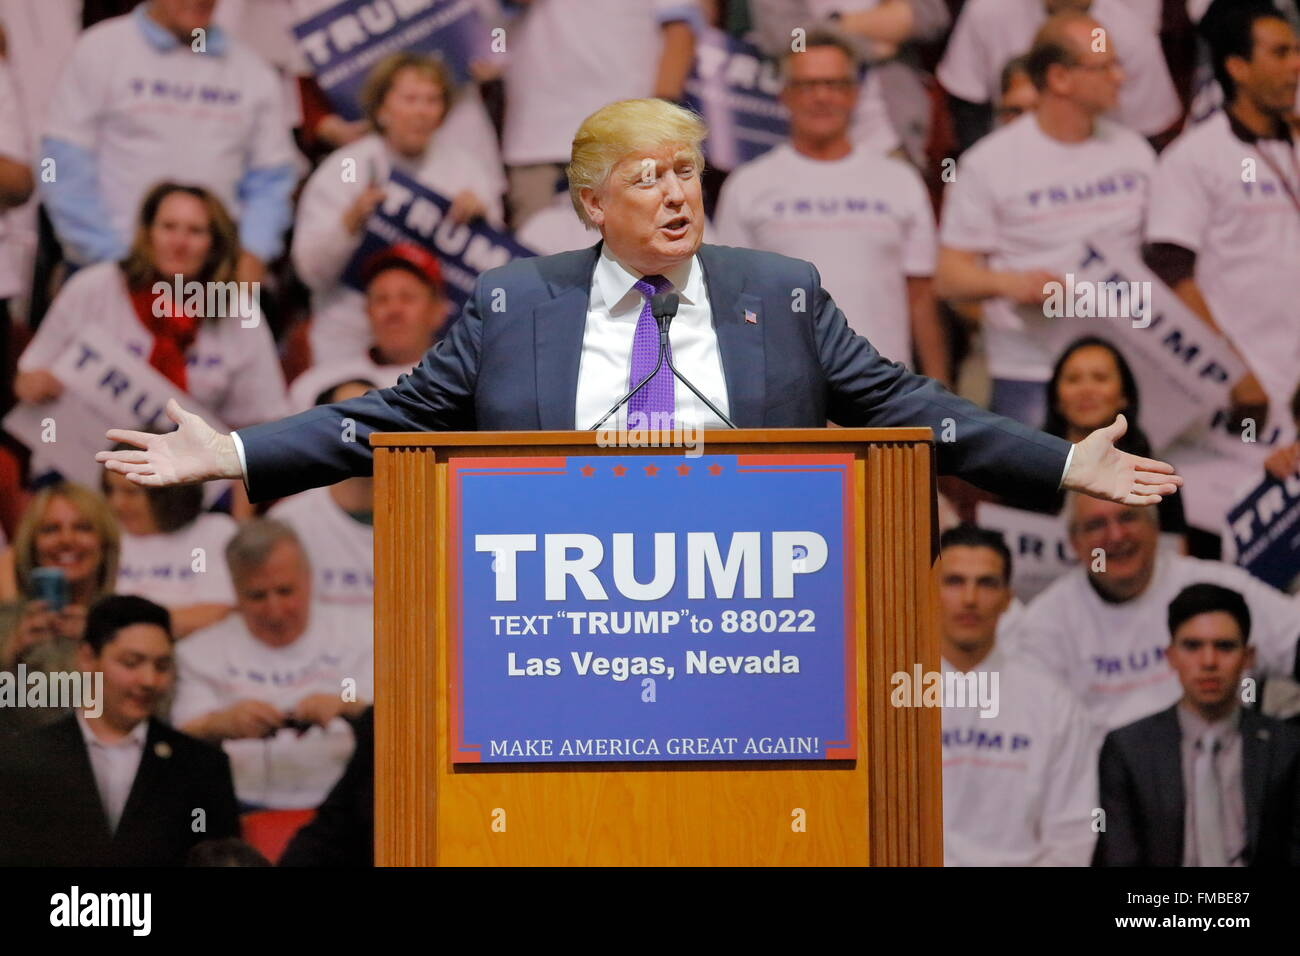 Republikanische Präsidentschaftskandidat Donald Trump Kampagne Rallye im South Point Arena & Casino in Stockbild